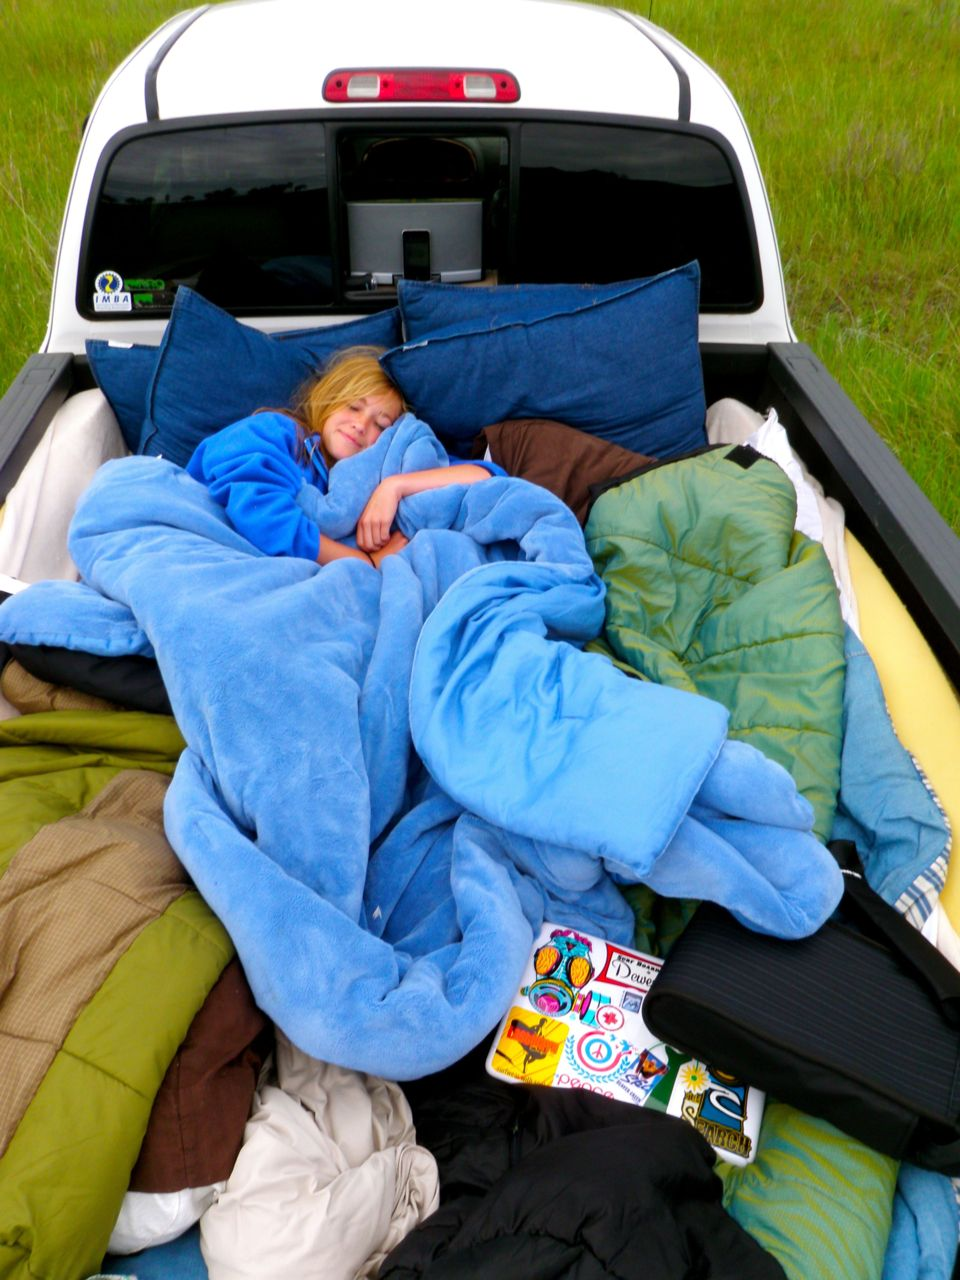 Fill a truck bed full of pillows and blankets and drive to the middle of nowhere